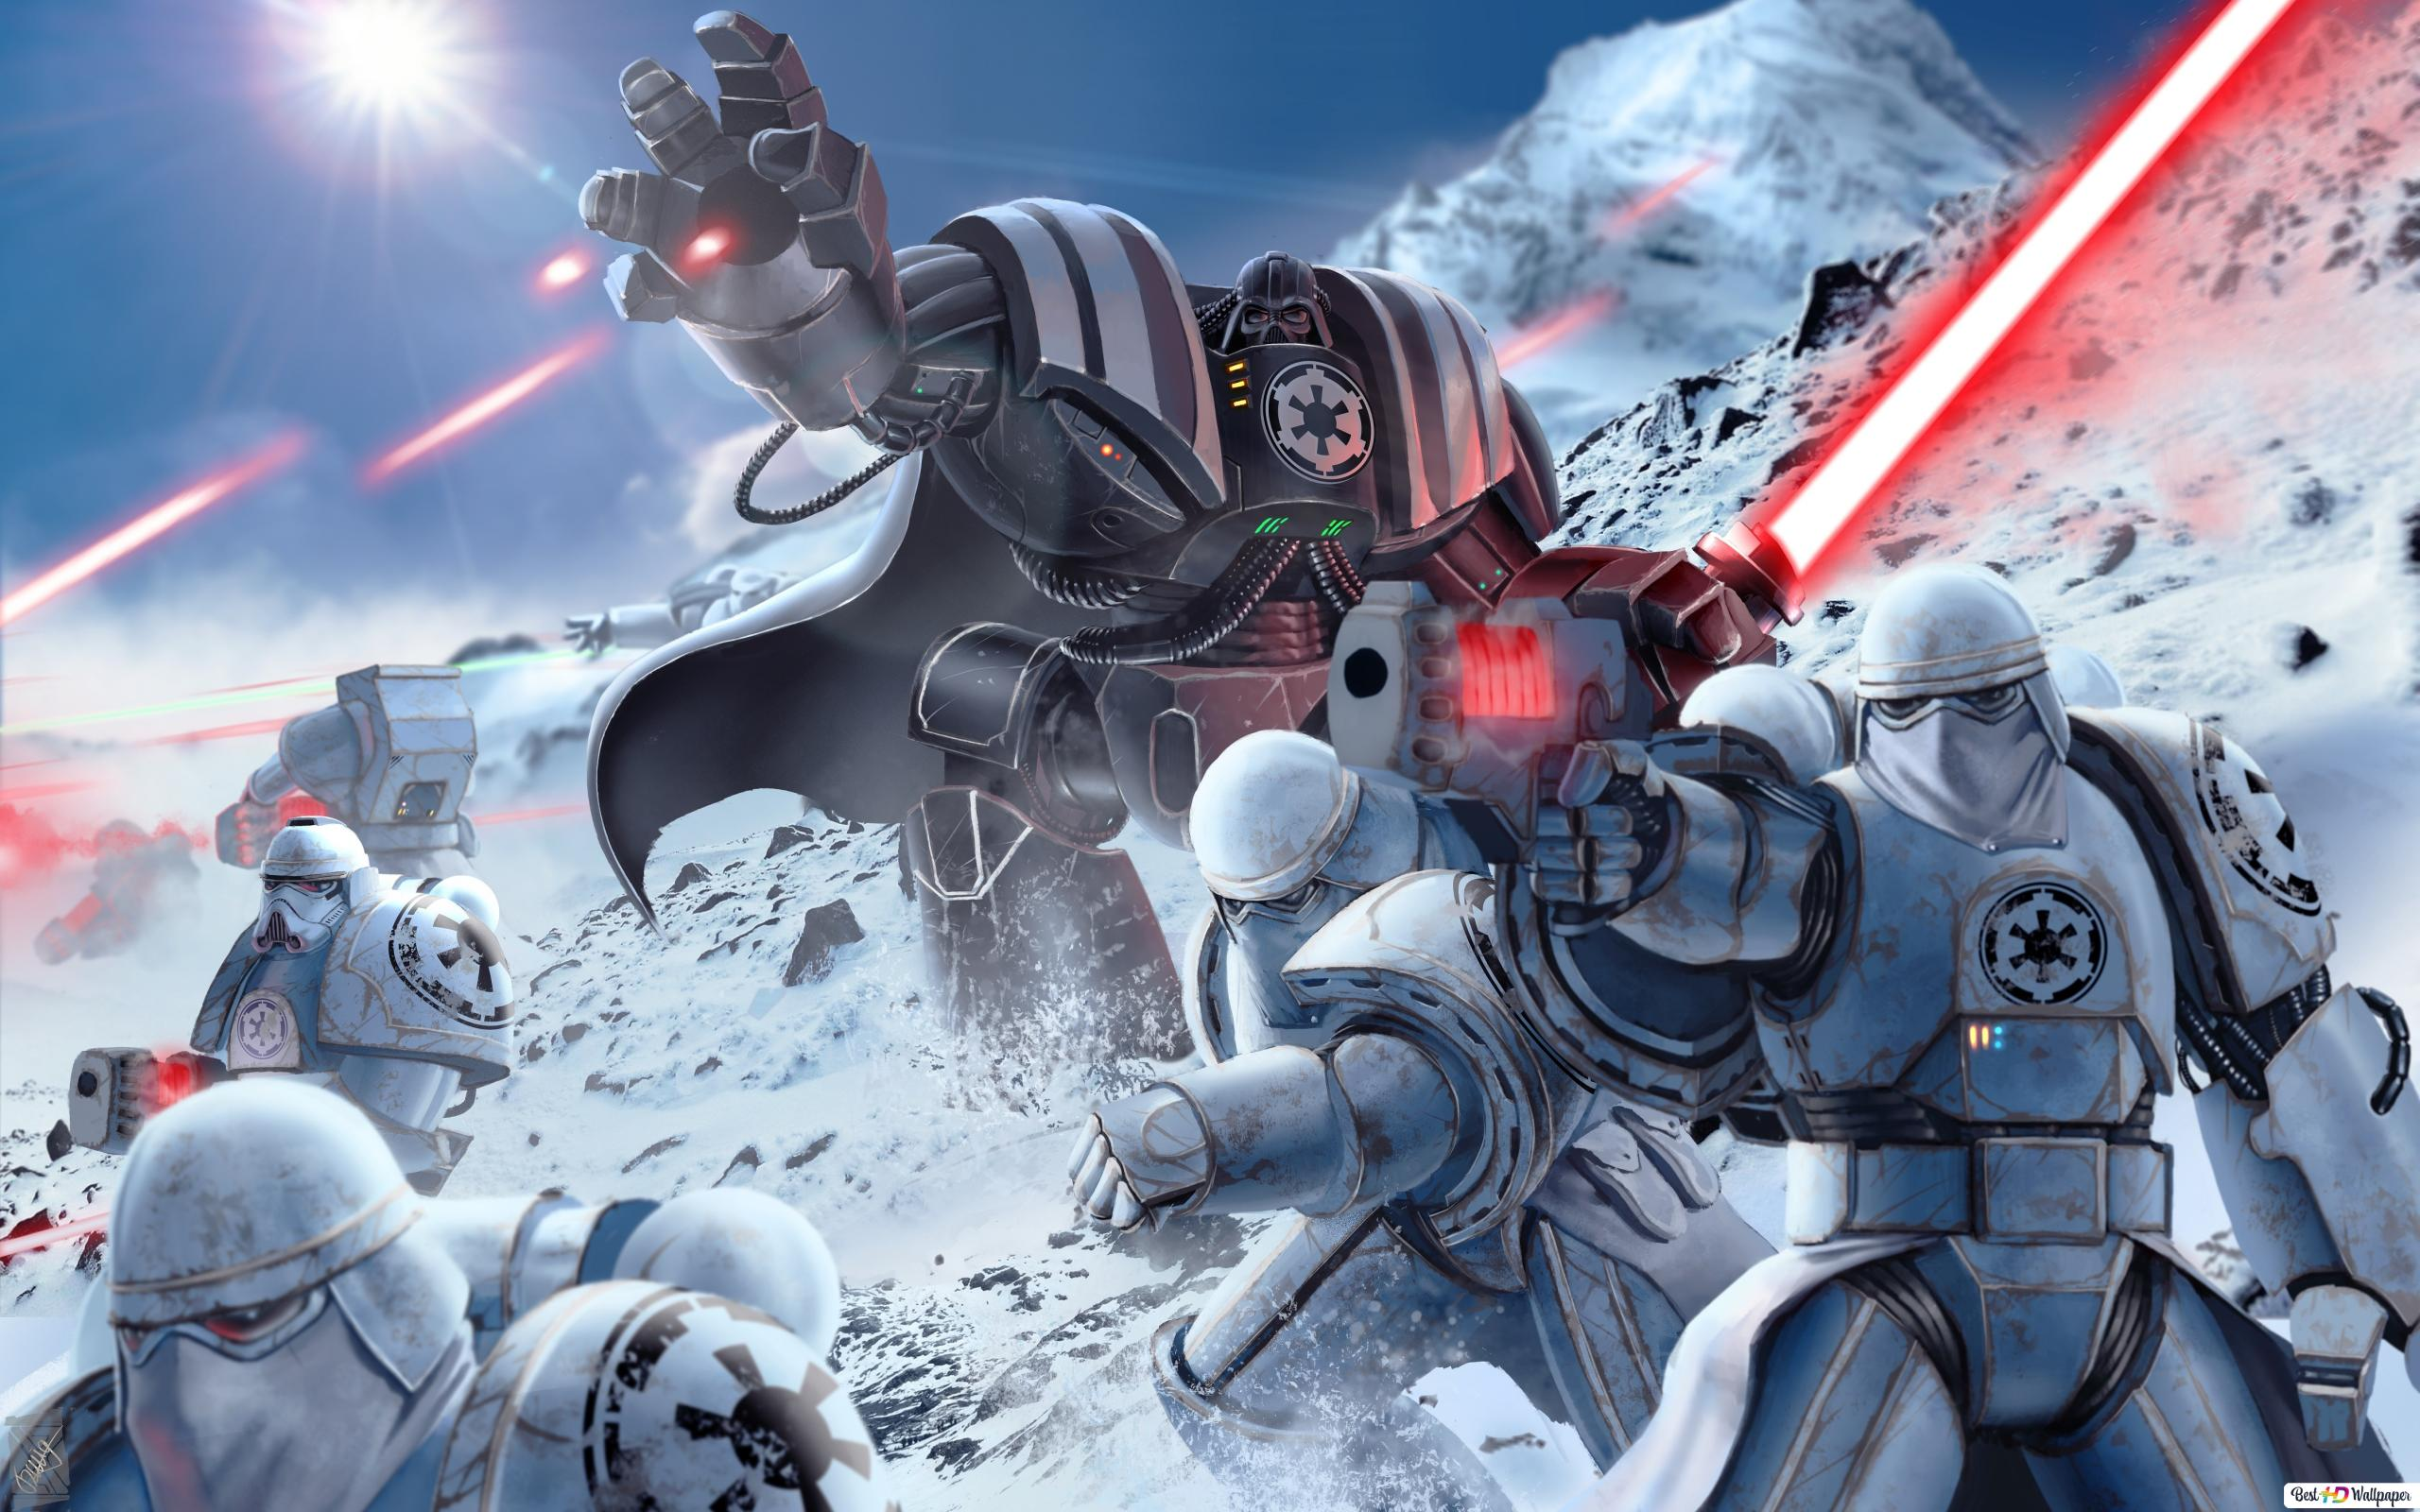 Star Wars Darth Vader Mit Sturmtruppen Hd